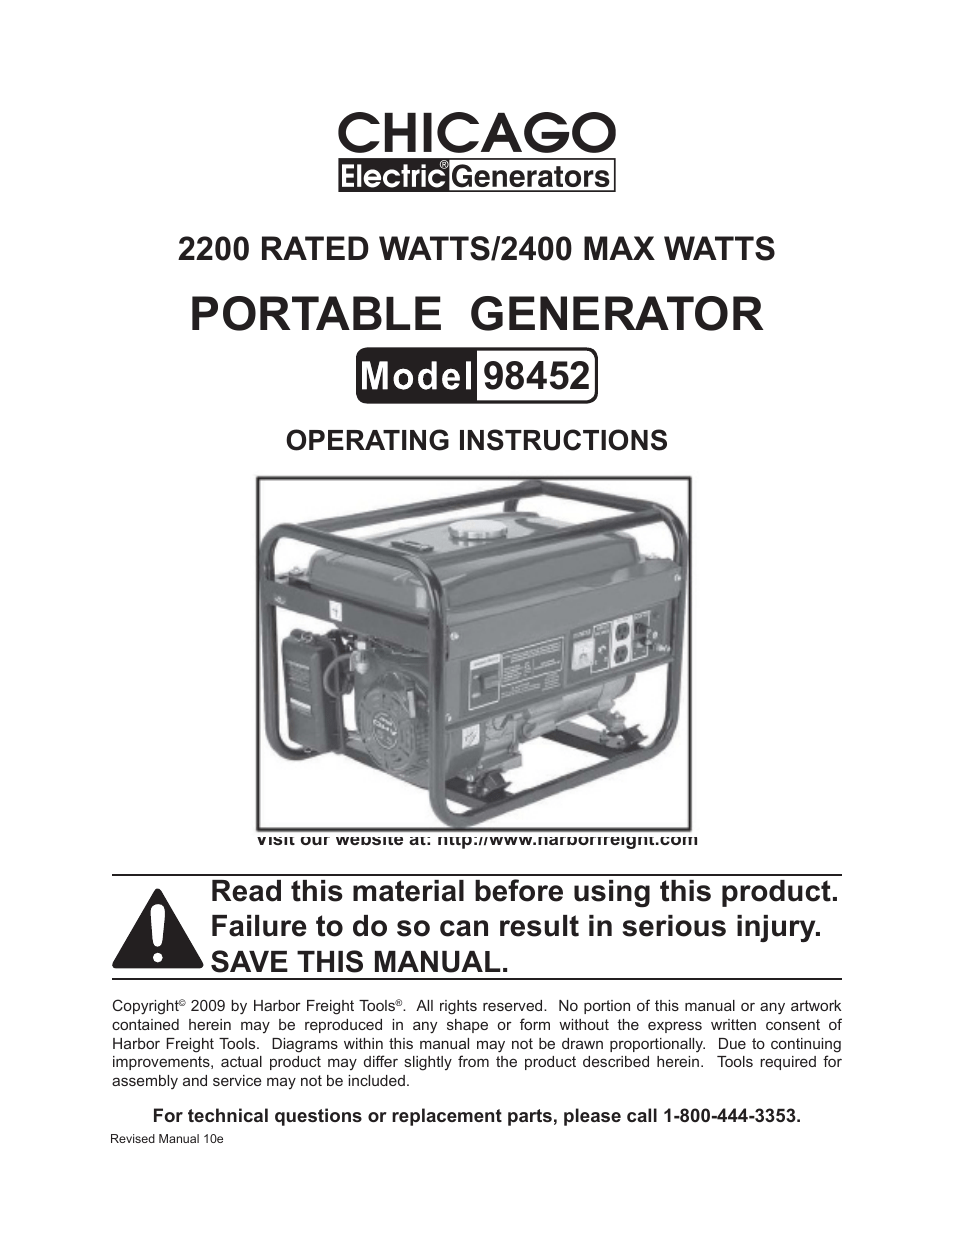 Predator 4000 Generator Parts Diagram | chion generator wiring ... on cabela's 4000 watt generator, harbor freight power generator, honda 4000 watt generator, harbor freight generator head, harbor freight inverter generator, sears 4000 watt generator, home depot 4000 watt generator, harbor freight 3 phase generator,